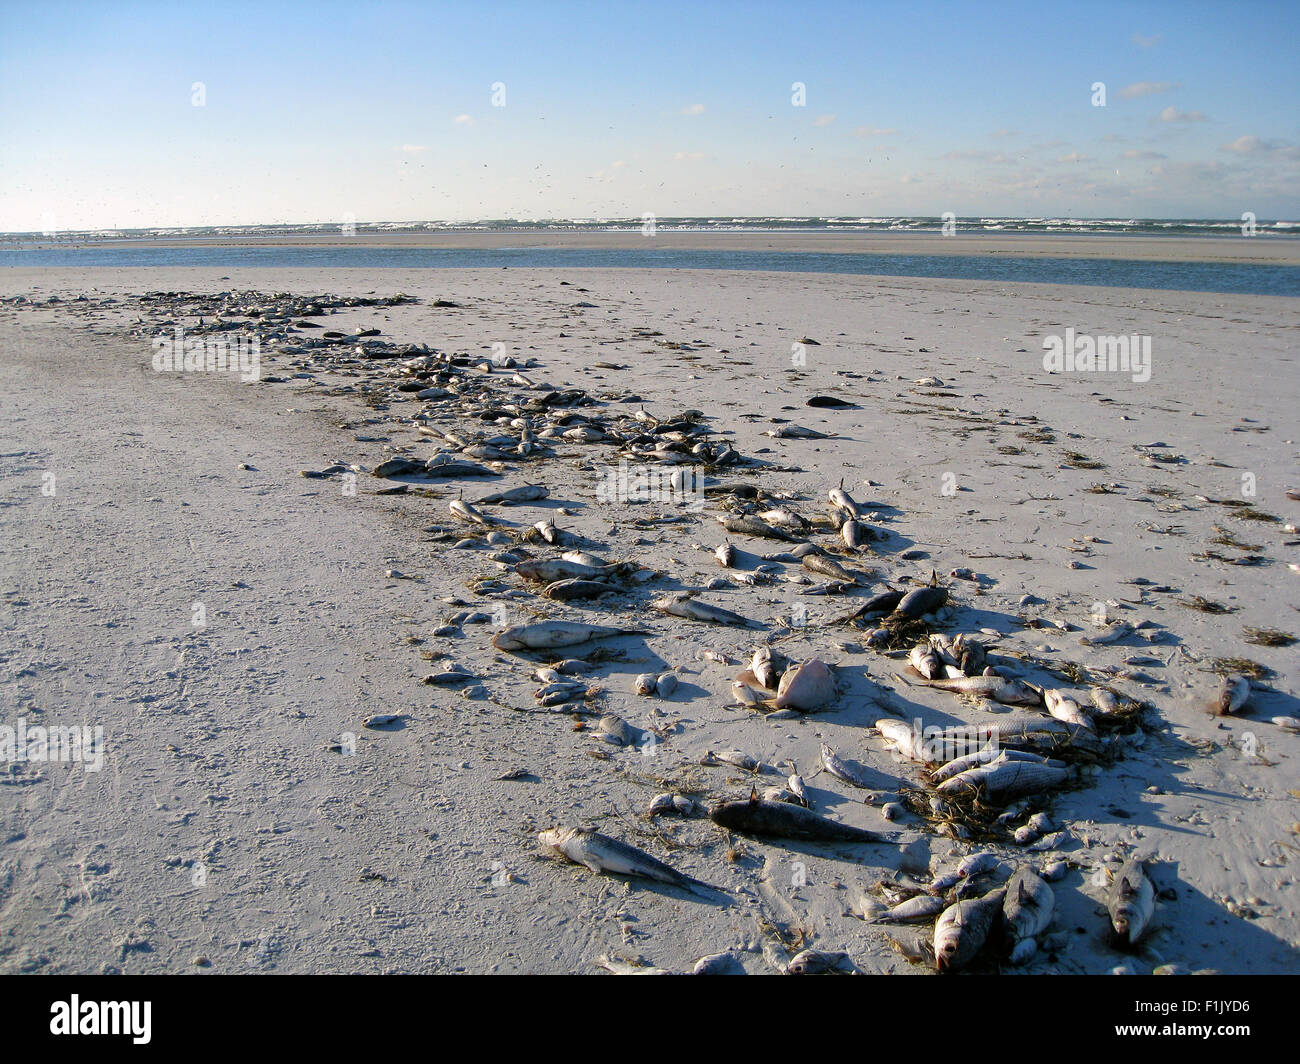 Hundreds of dead fish from the Gulf of Mexico killed by a red tide are washed up on Siesta Beach at Sarasota, Florida, - Stock Image